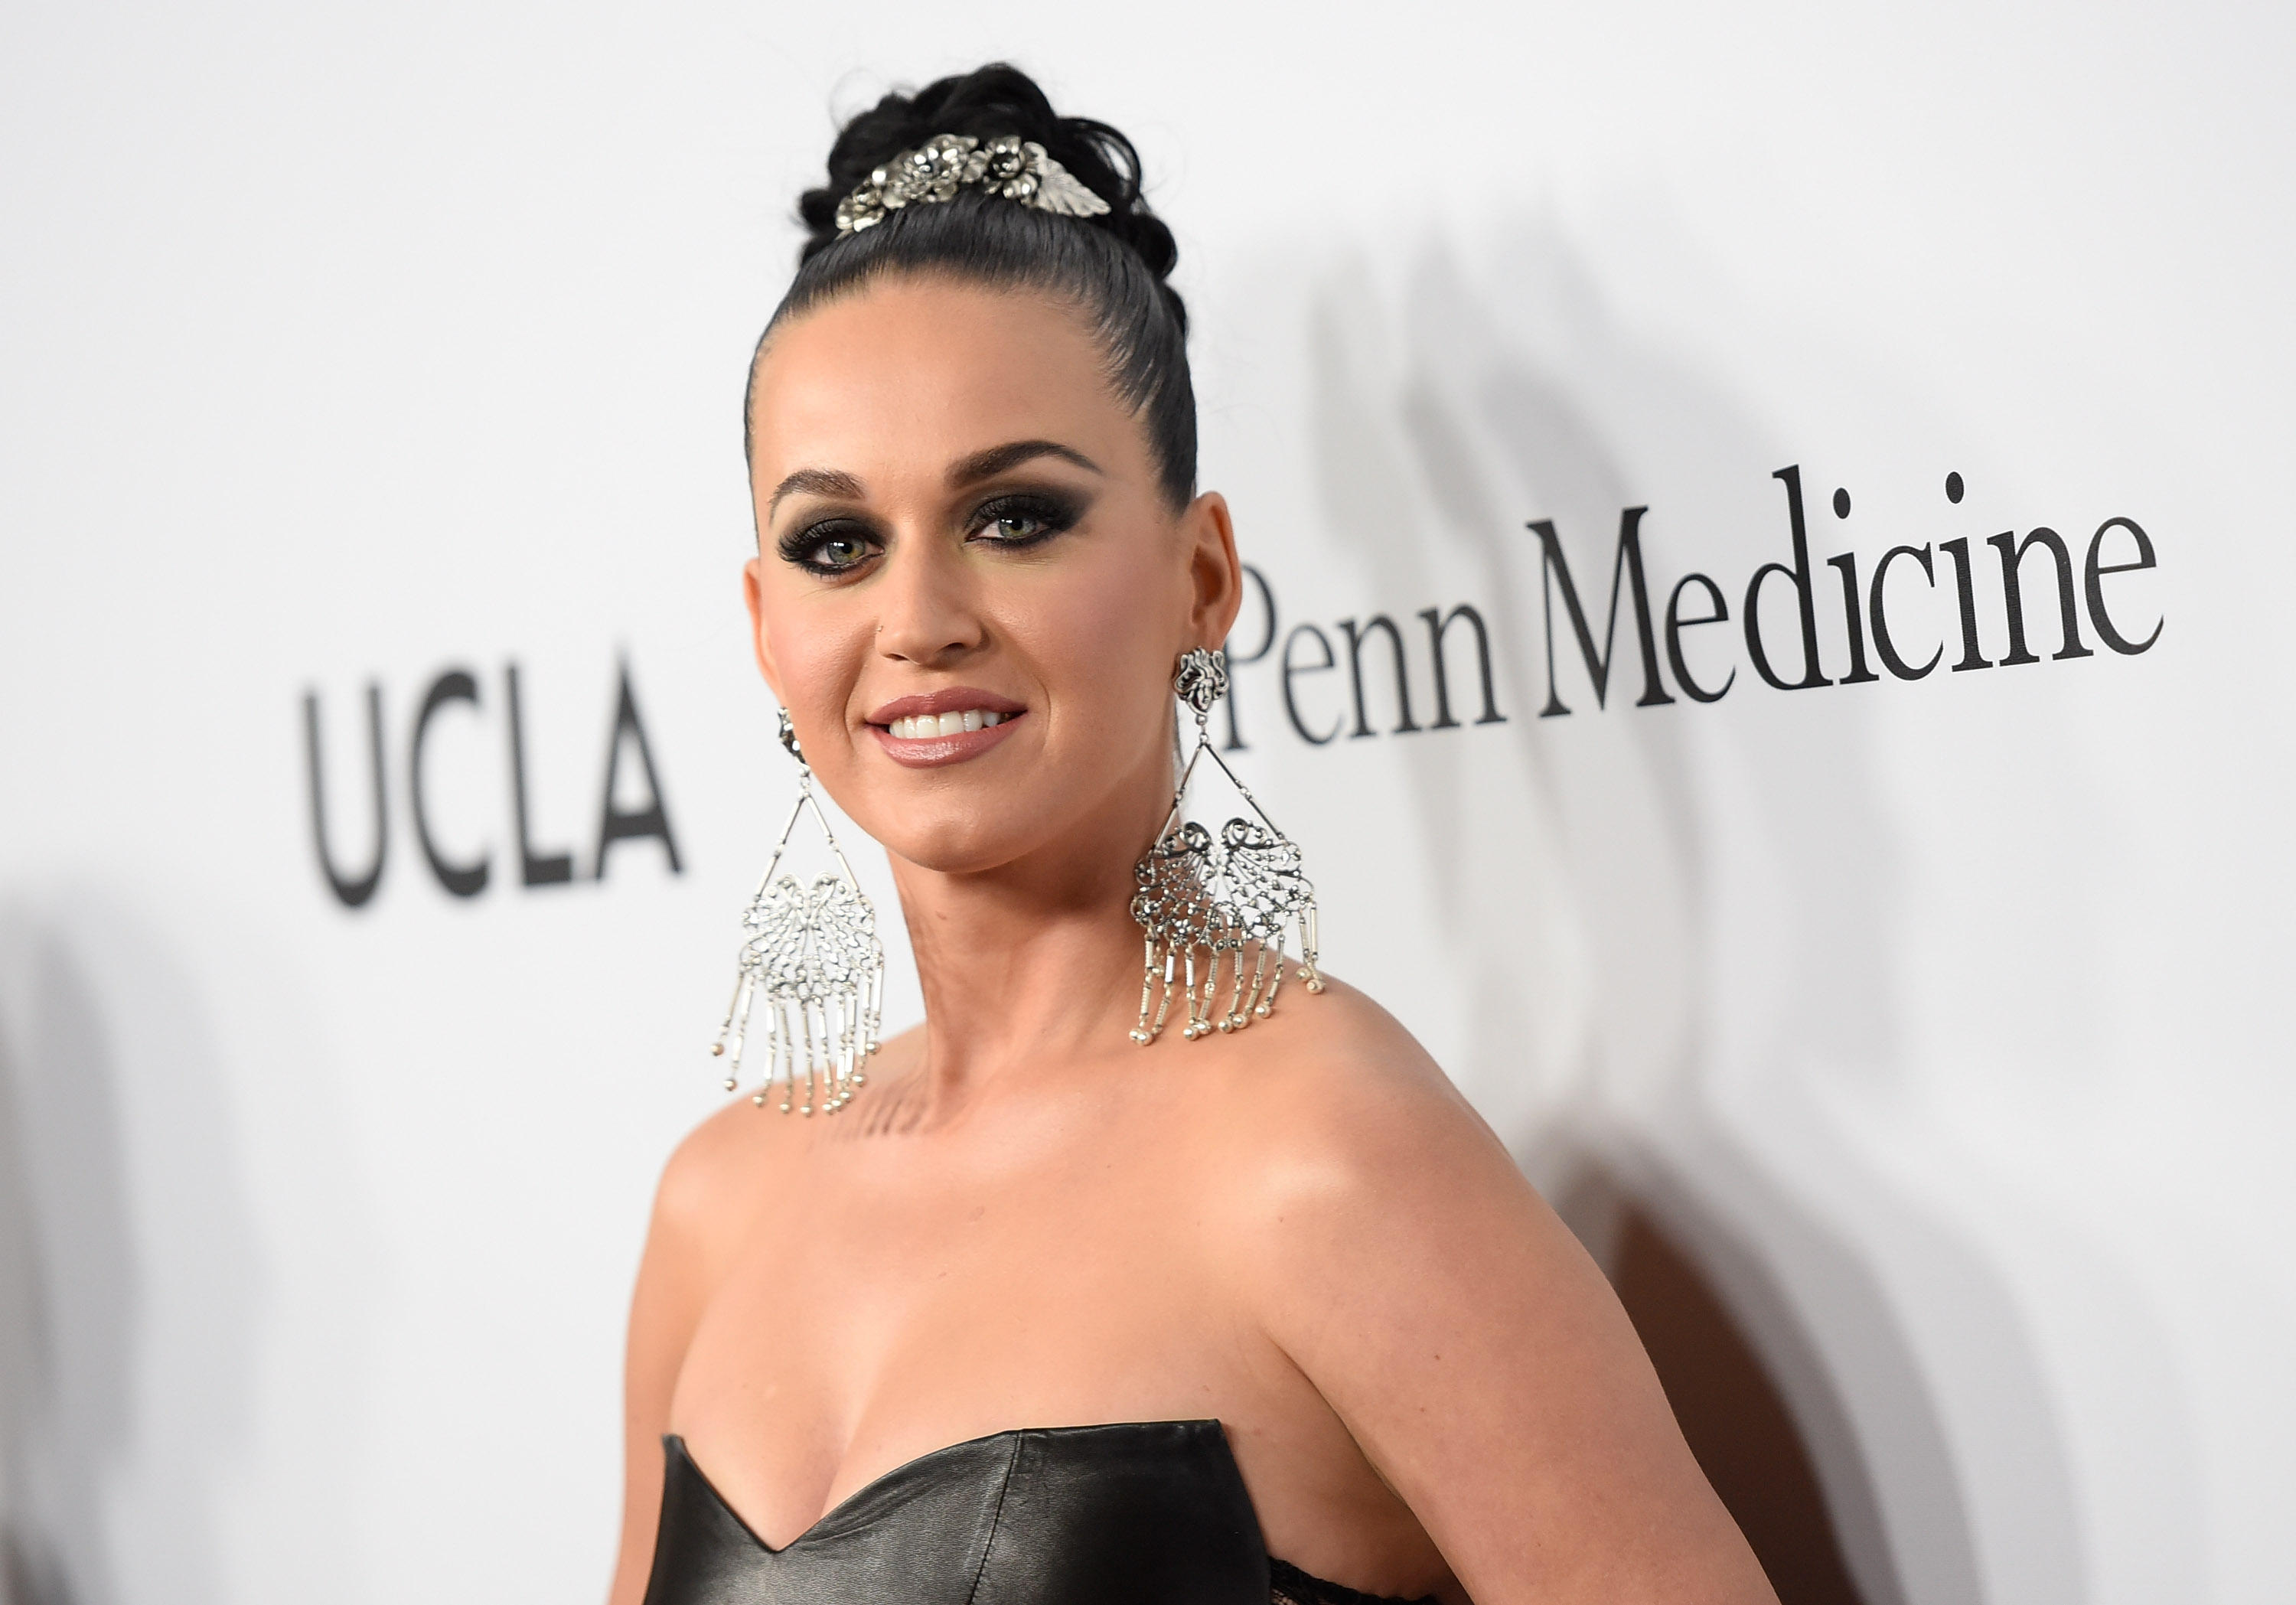 black singles in perry See katy perry's singles & albums global chart performance, including offical music videos.